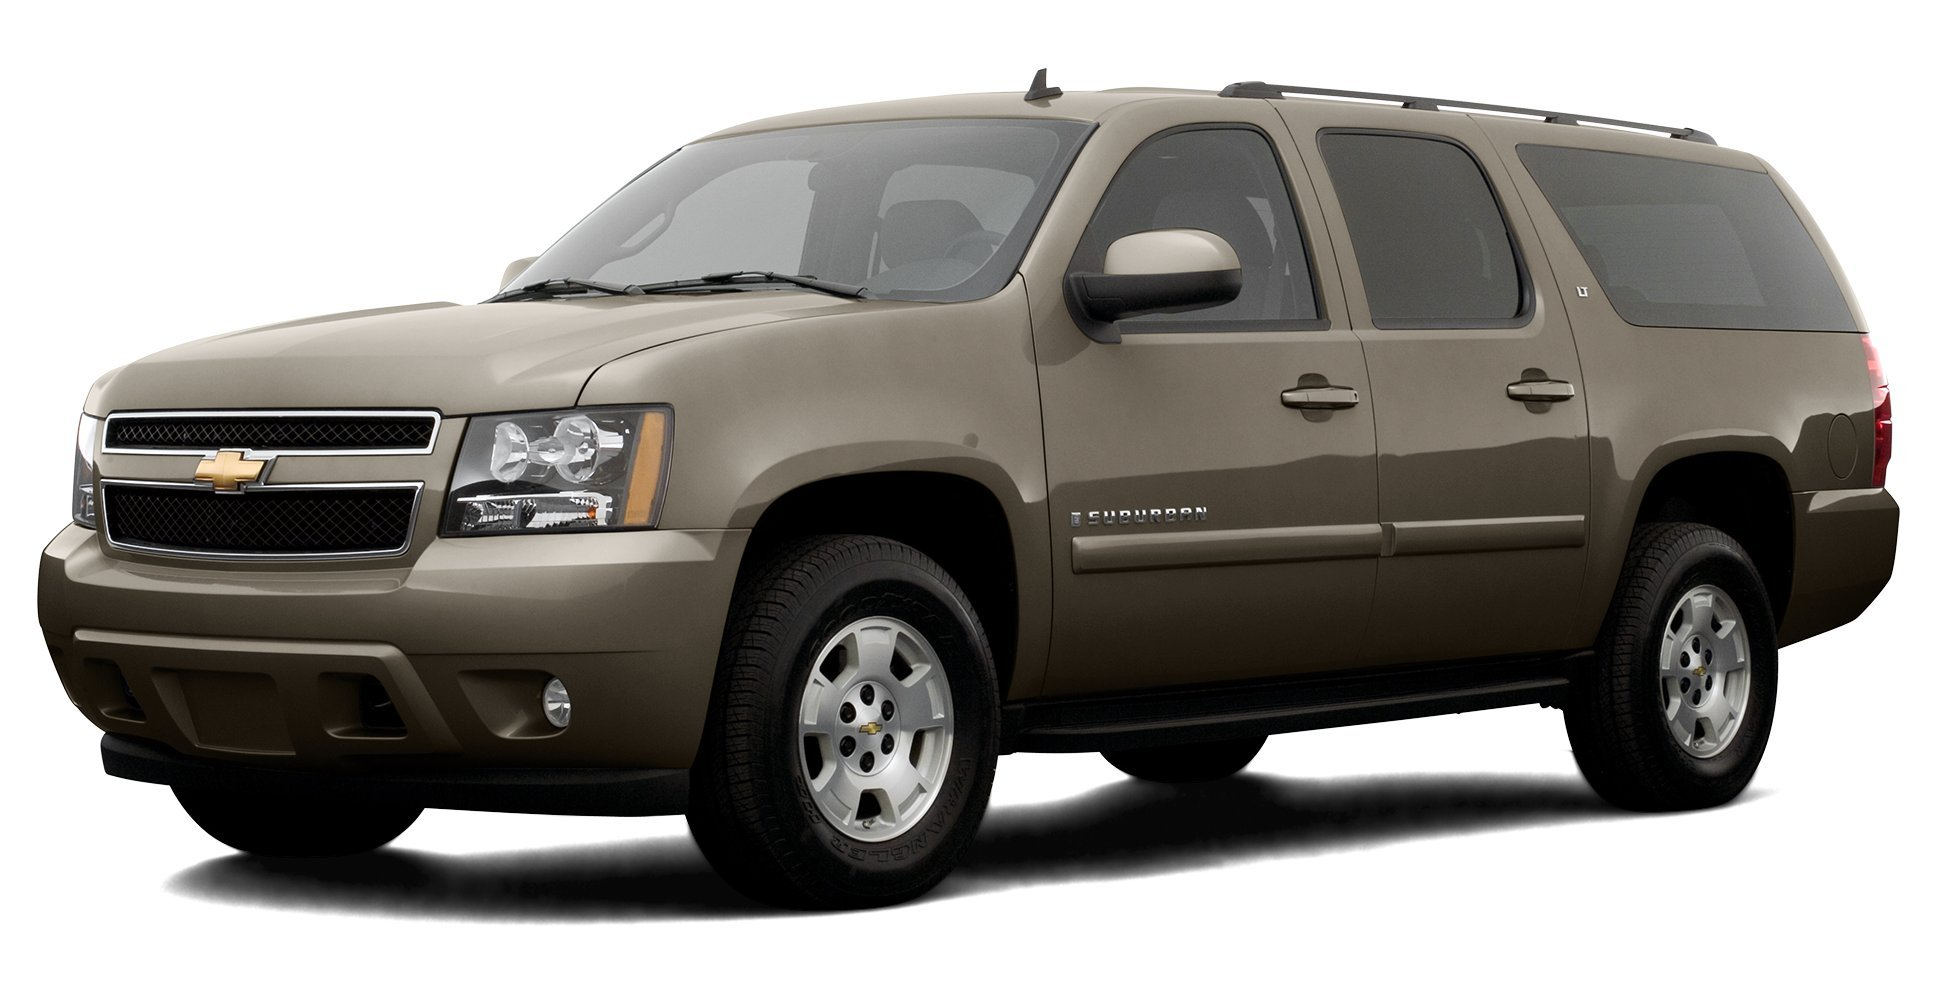 2007 chevrolet suburban 1500 reviews images. Black Bedroom Furniture Sets. Home Design Ideas